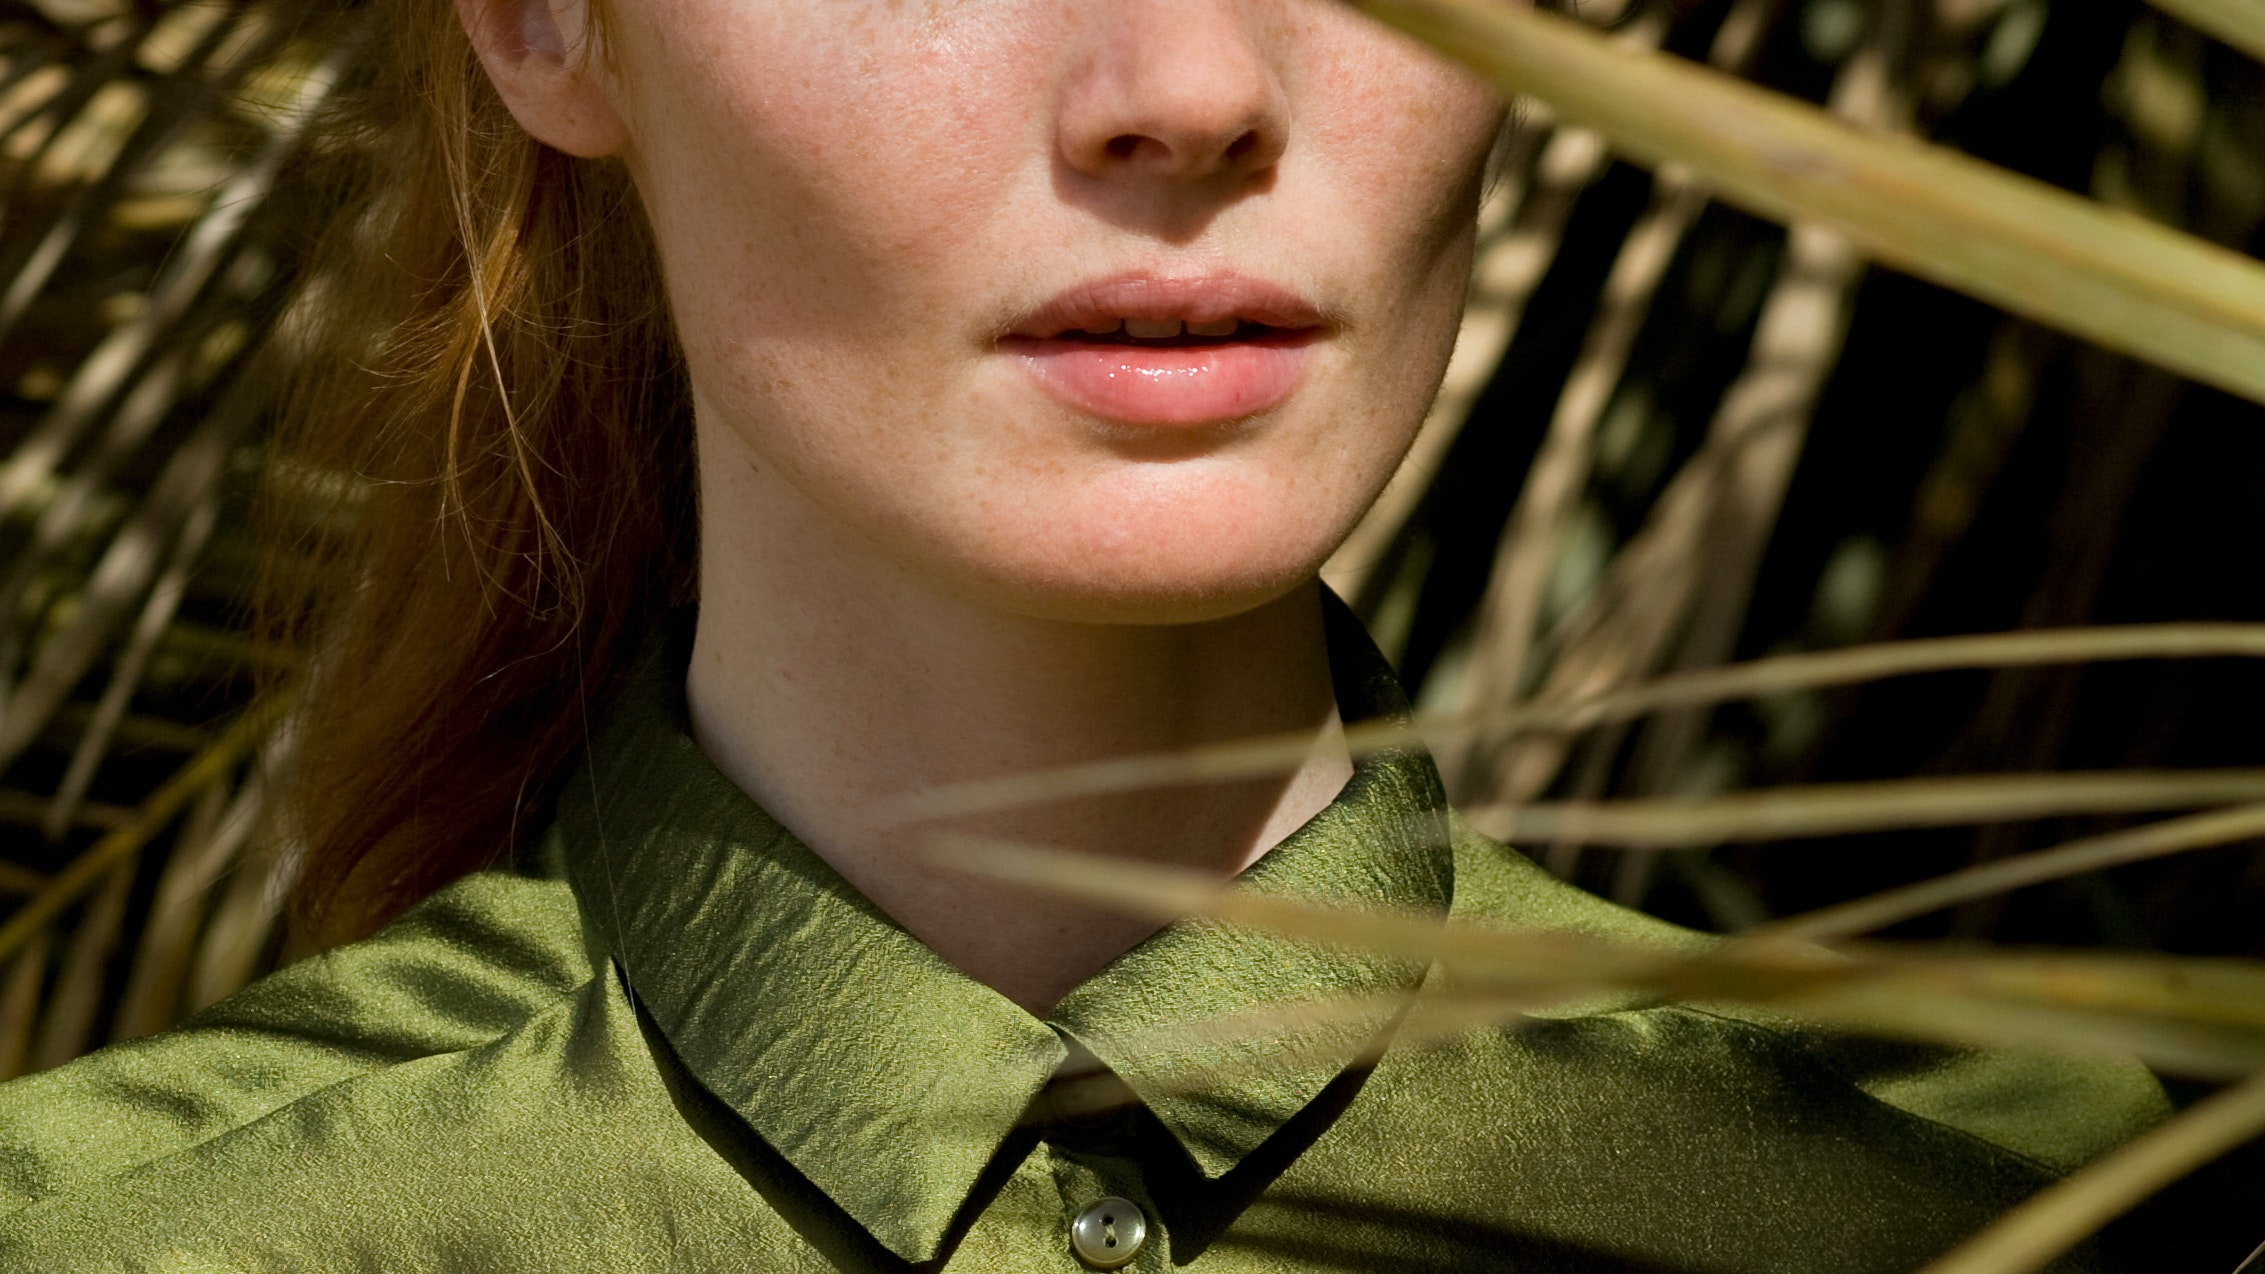 chlorophyll benefits skin care woman in green